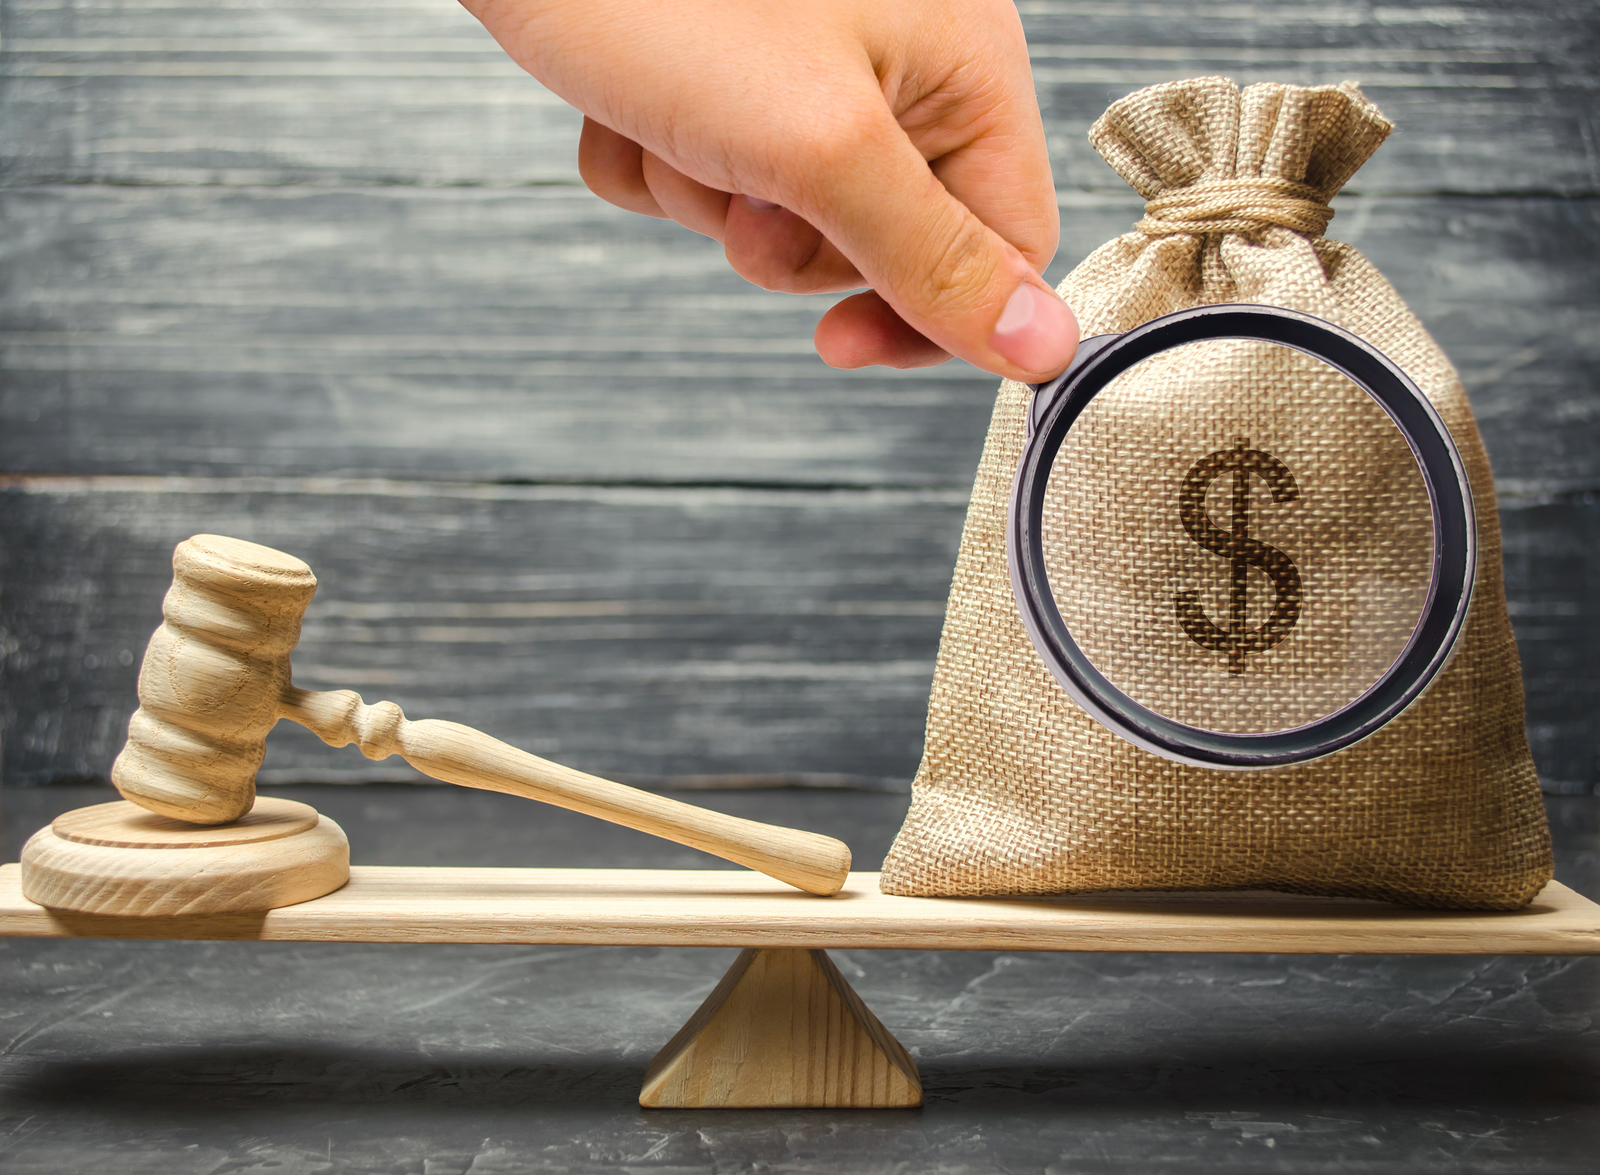 Lawsuit Funding: Financial Support for Plaintiff